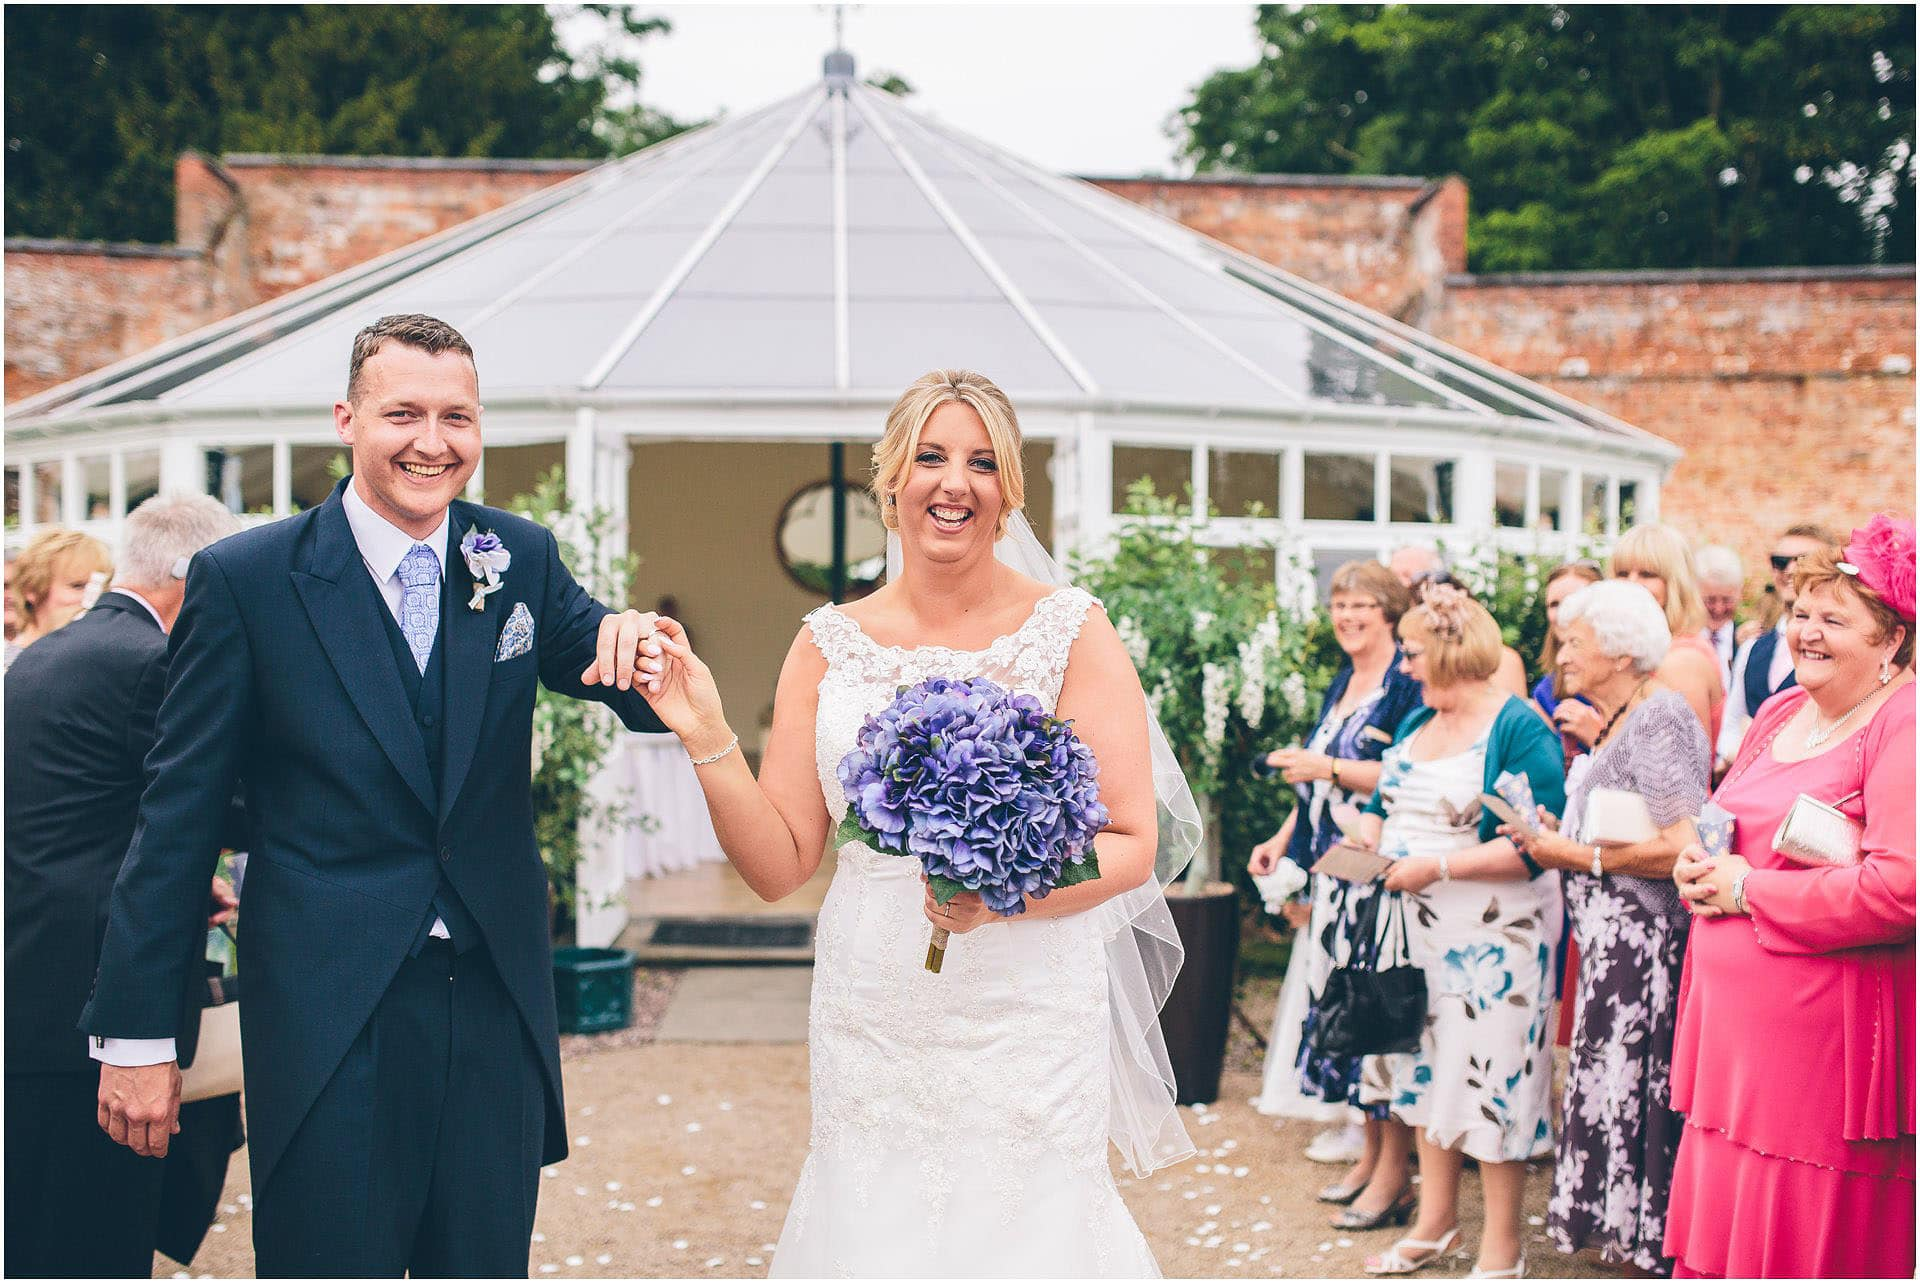 Combermere_Abbey_Wedding_Photography_0084